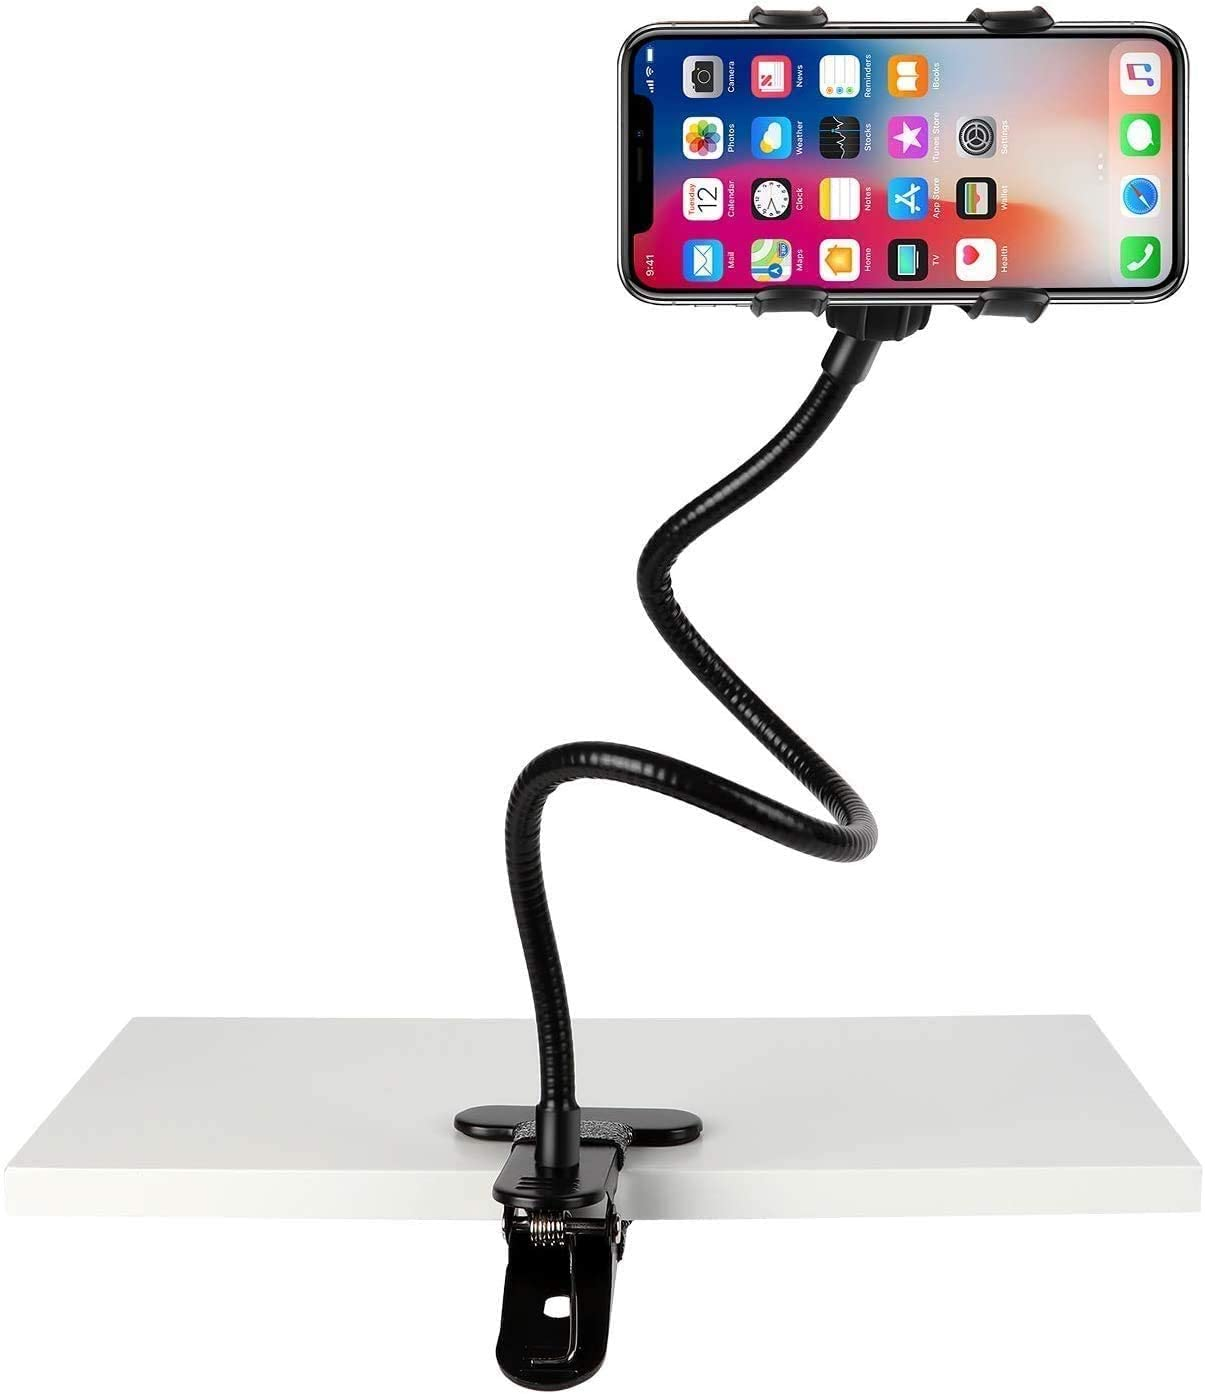 Car Phone Mount with 360/° Rotate Anti-Slip Detachable Strong Adhesive Base Compatible iPhone Samsung Galaxy Android Smartphones GPS Devices 3rd Generation Car Phone Holder 2 in 1 Upgraded